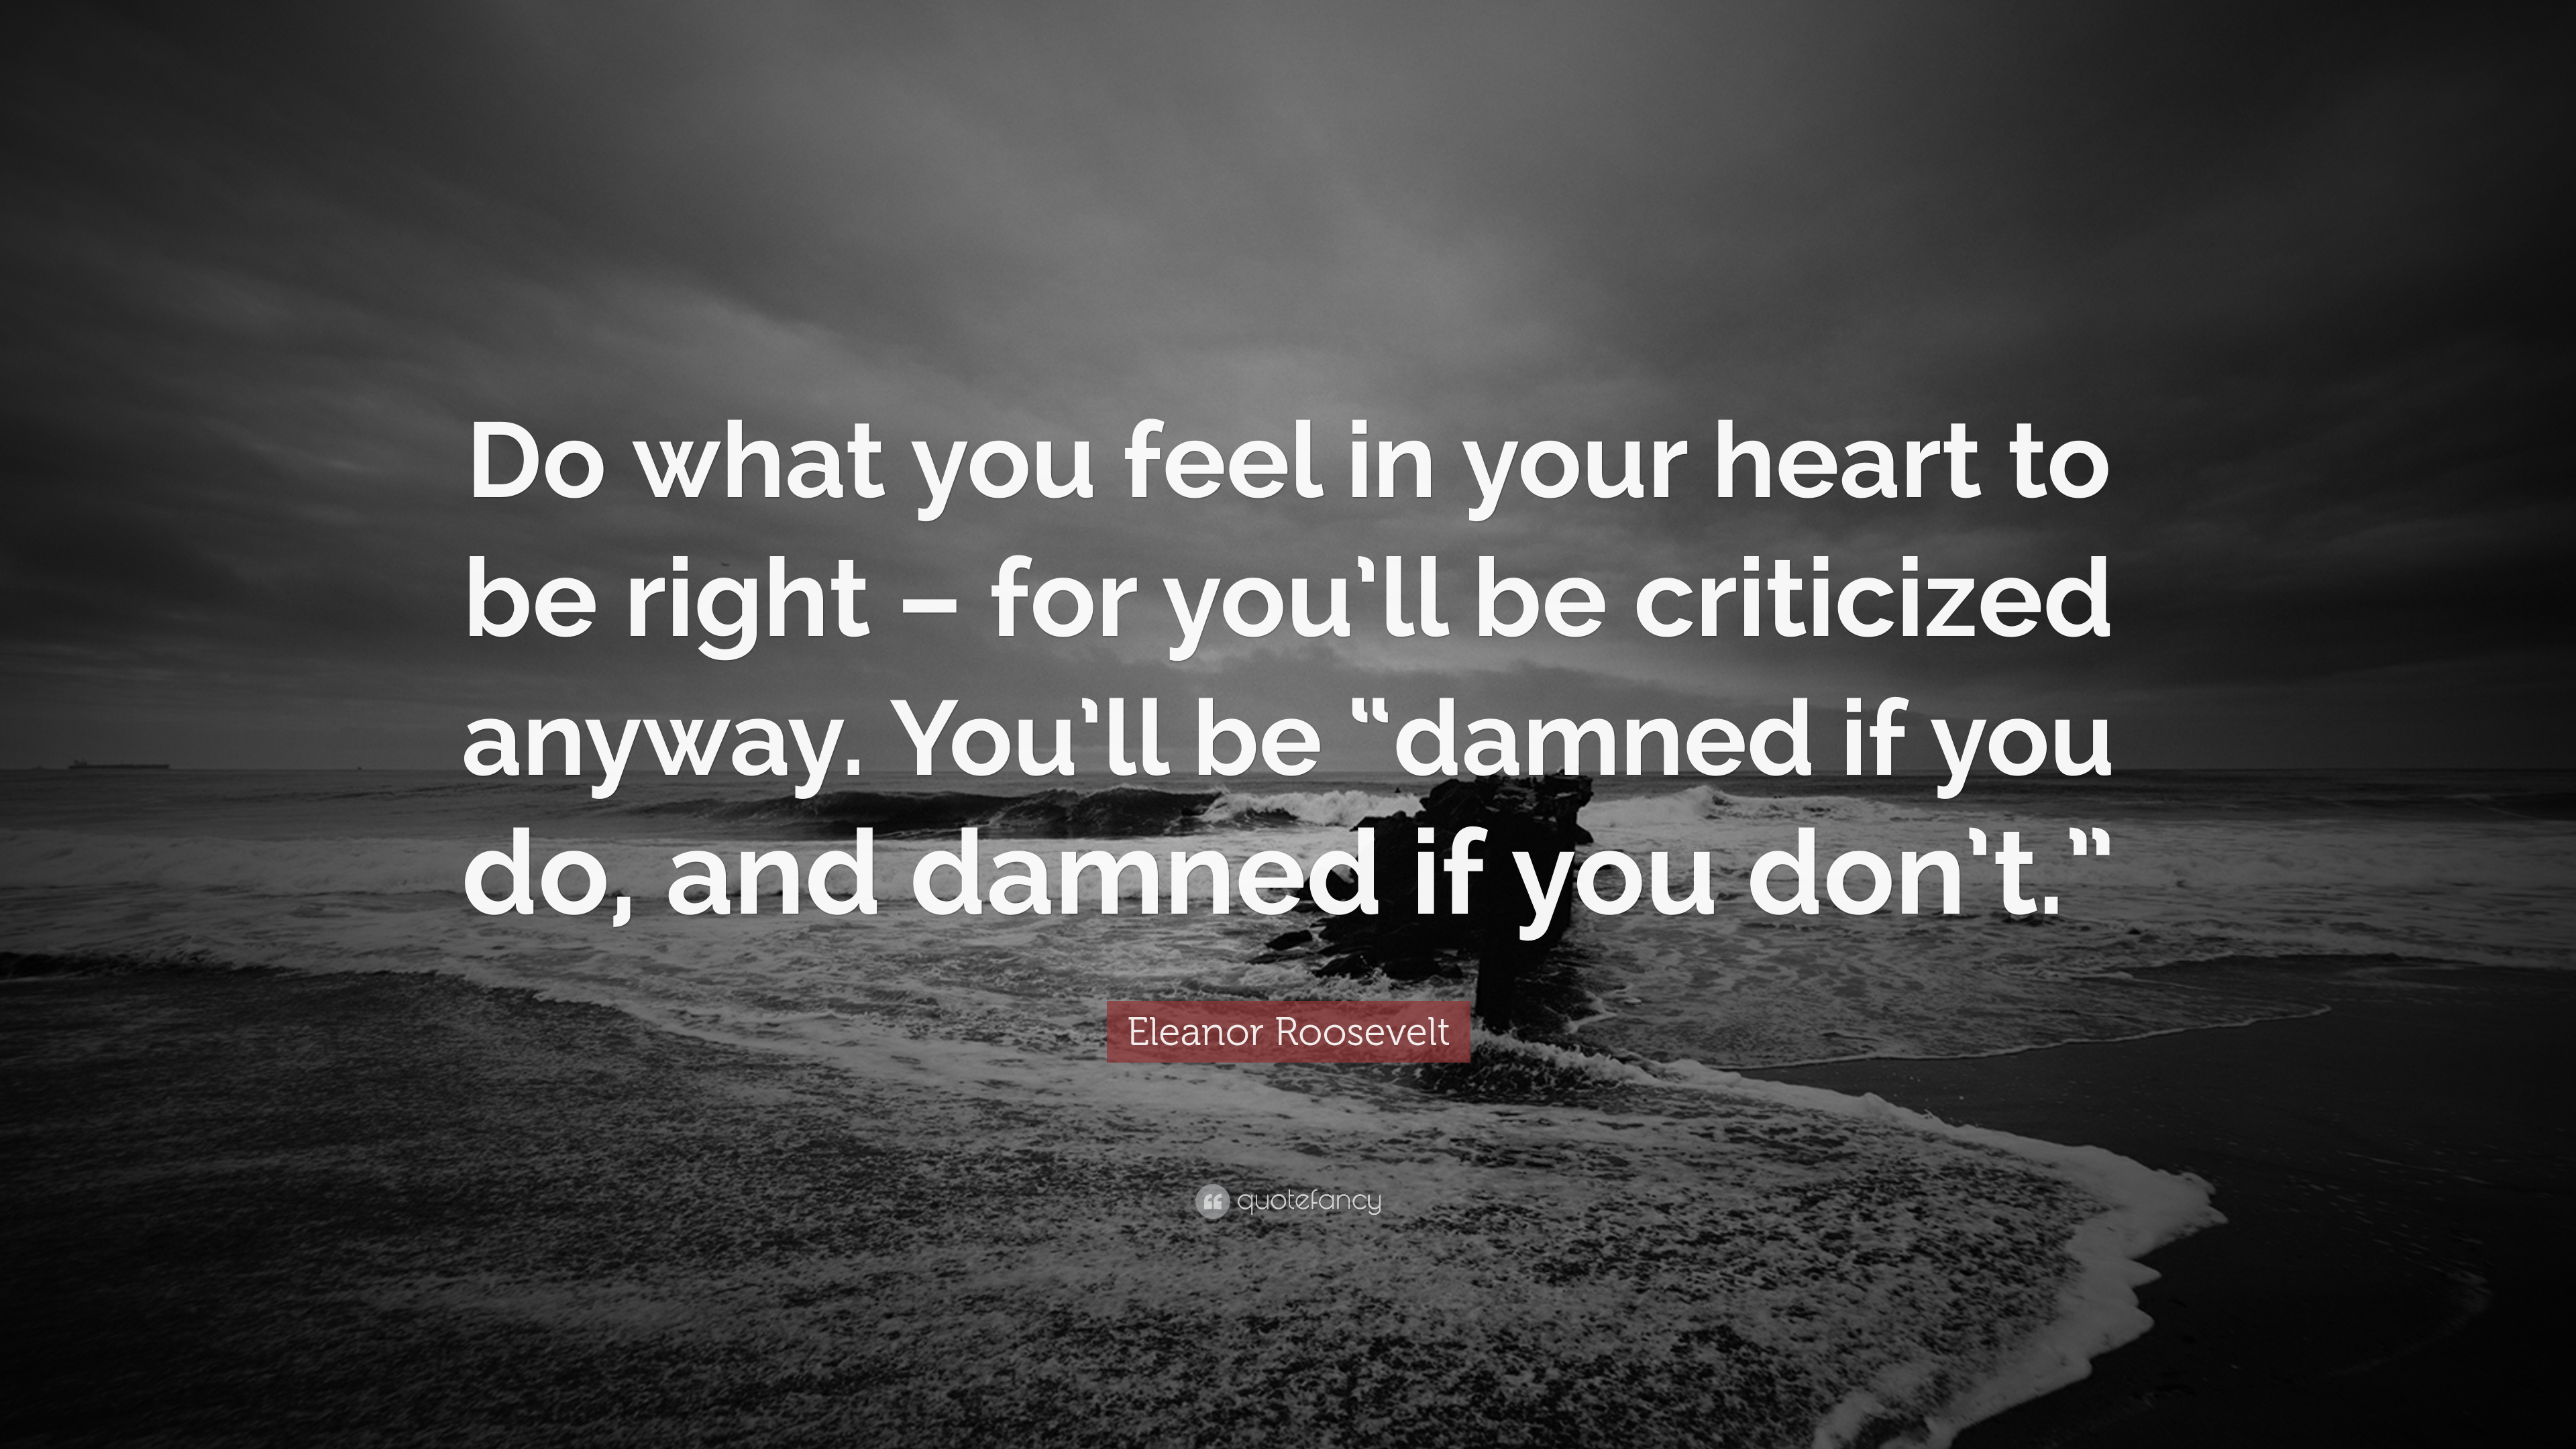 Eleanor Roosevelt Quote Do What You Feel In Your Heart To Be Right